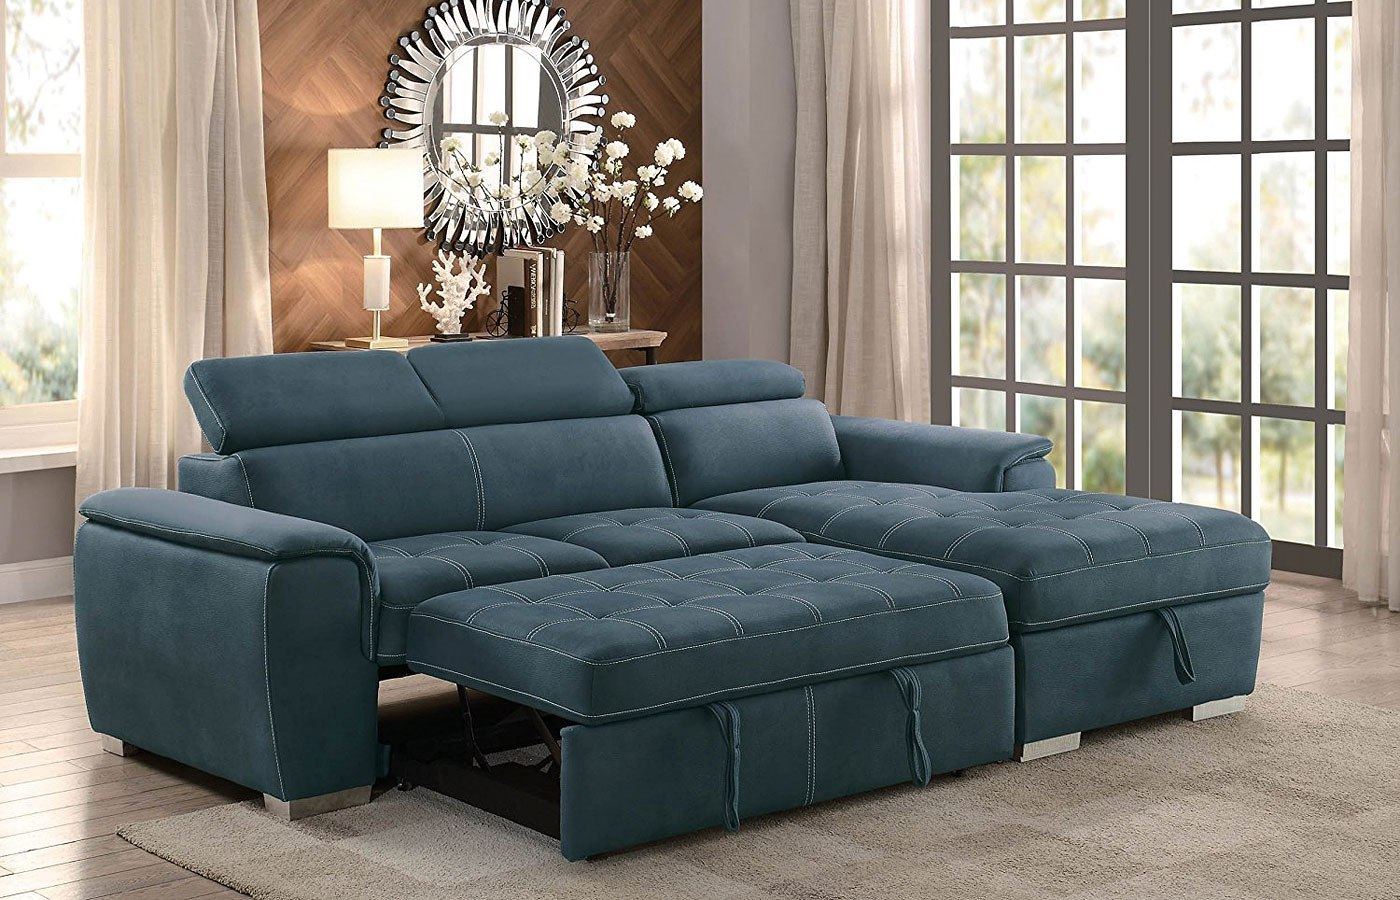 Ferriday Sectional W/ Pull Out Bed Blue Homelegance ...